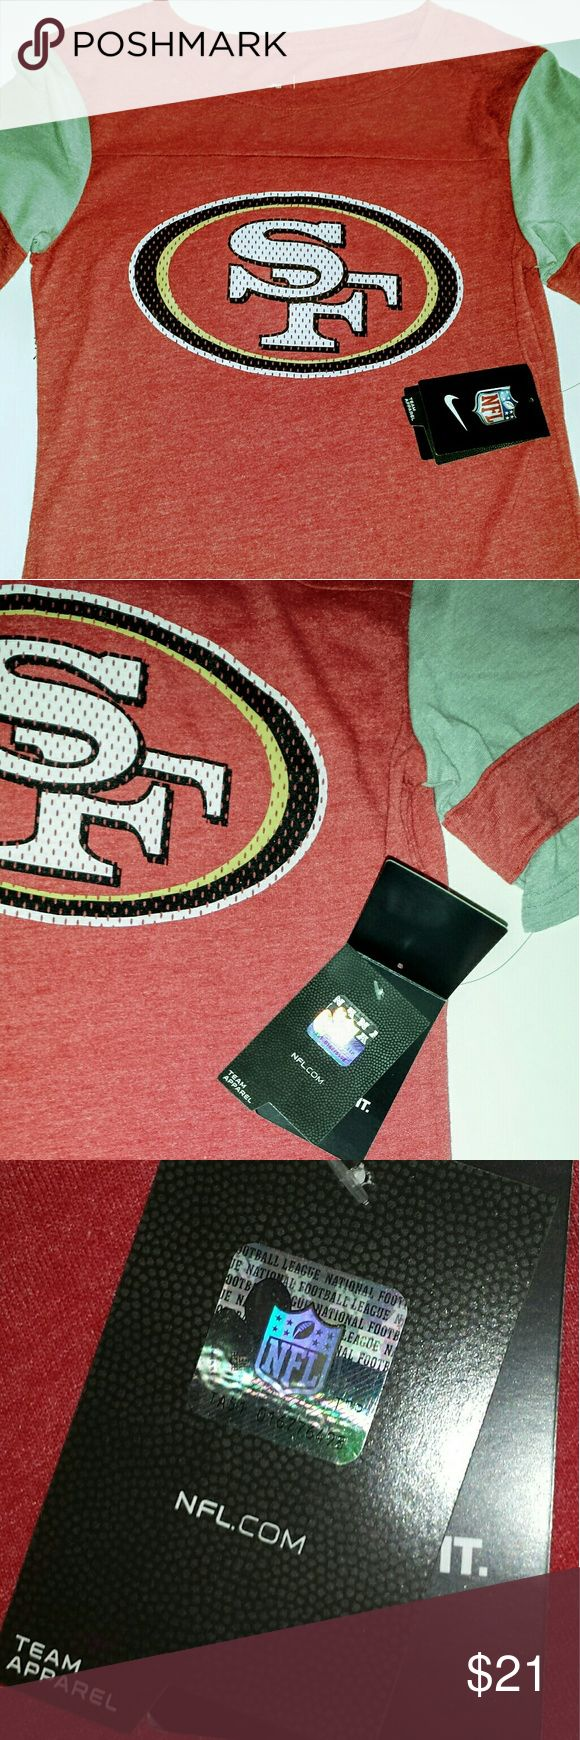 Nike NFL San Franciso 49ers Team Apparel New with Tags, NFL Serial #TA51-016776498 Nike Tops Tees - Short Sleeve